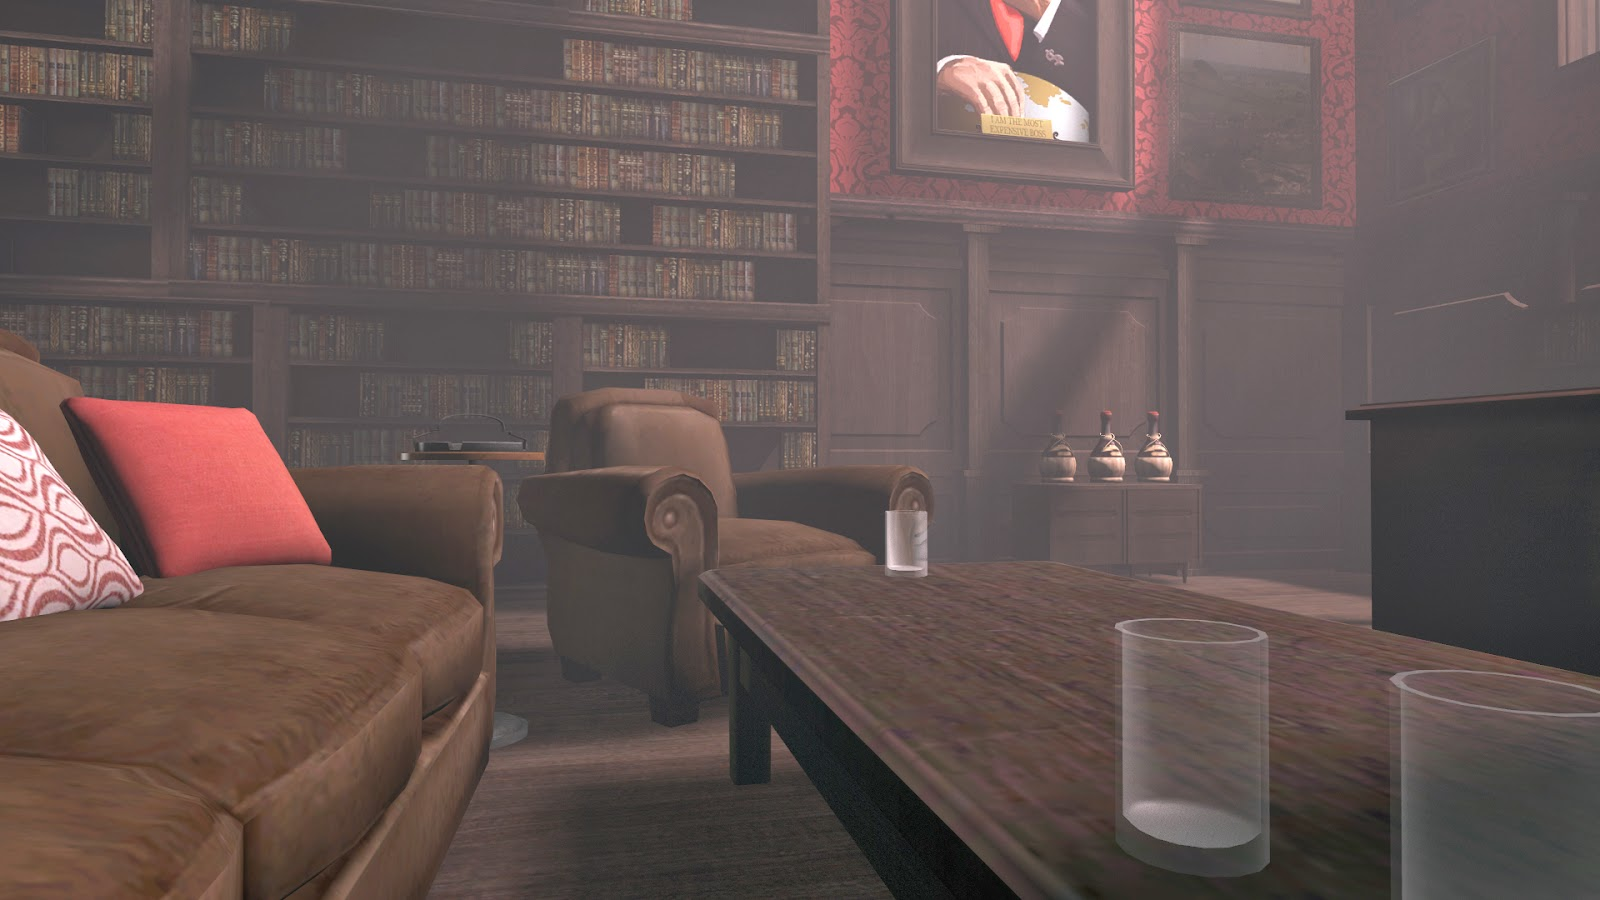 The Stanley Parable Screenshots